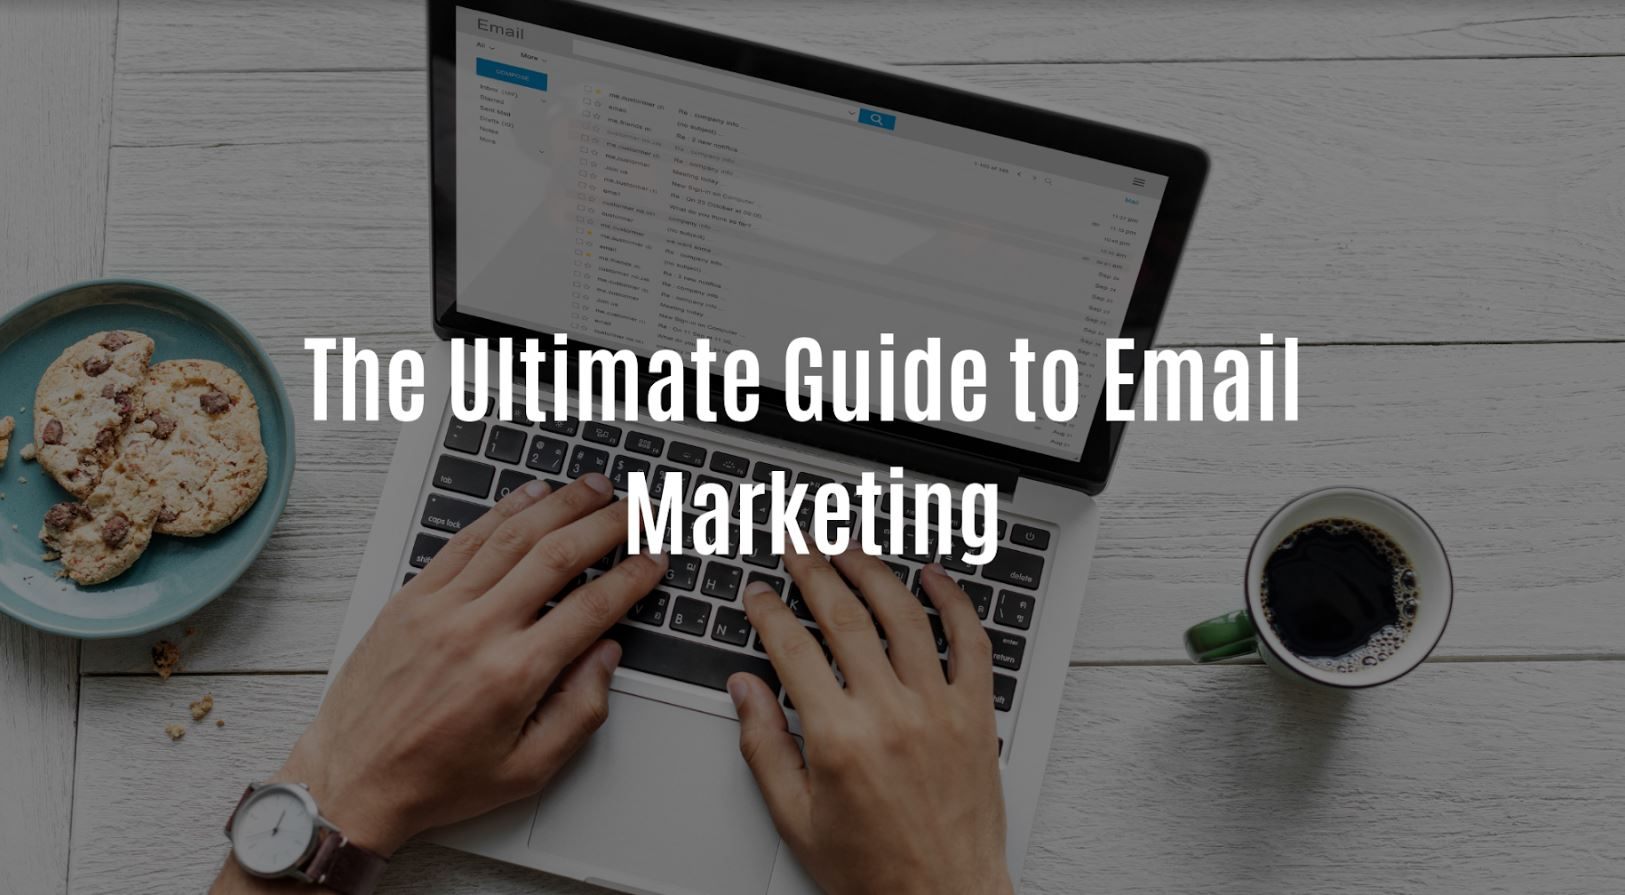 The Ultimate Guide to Email Marketing.JPG